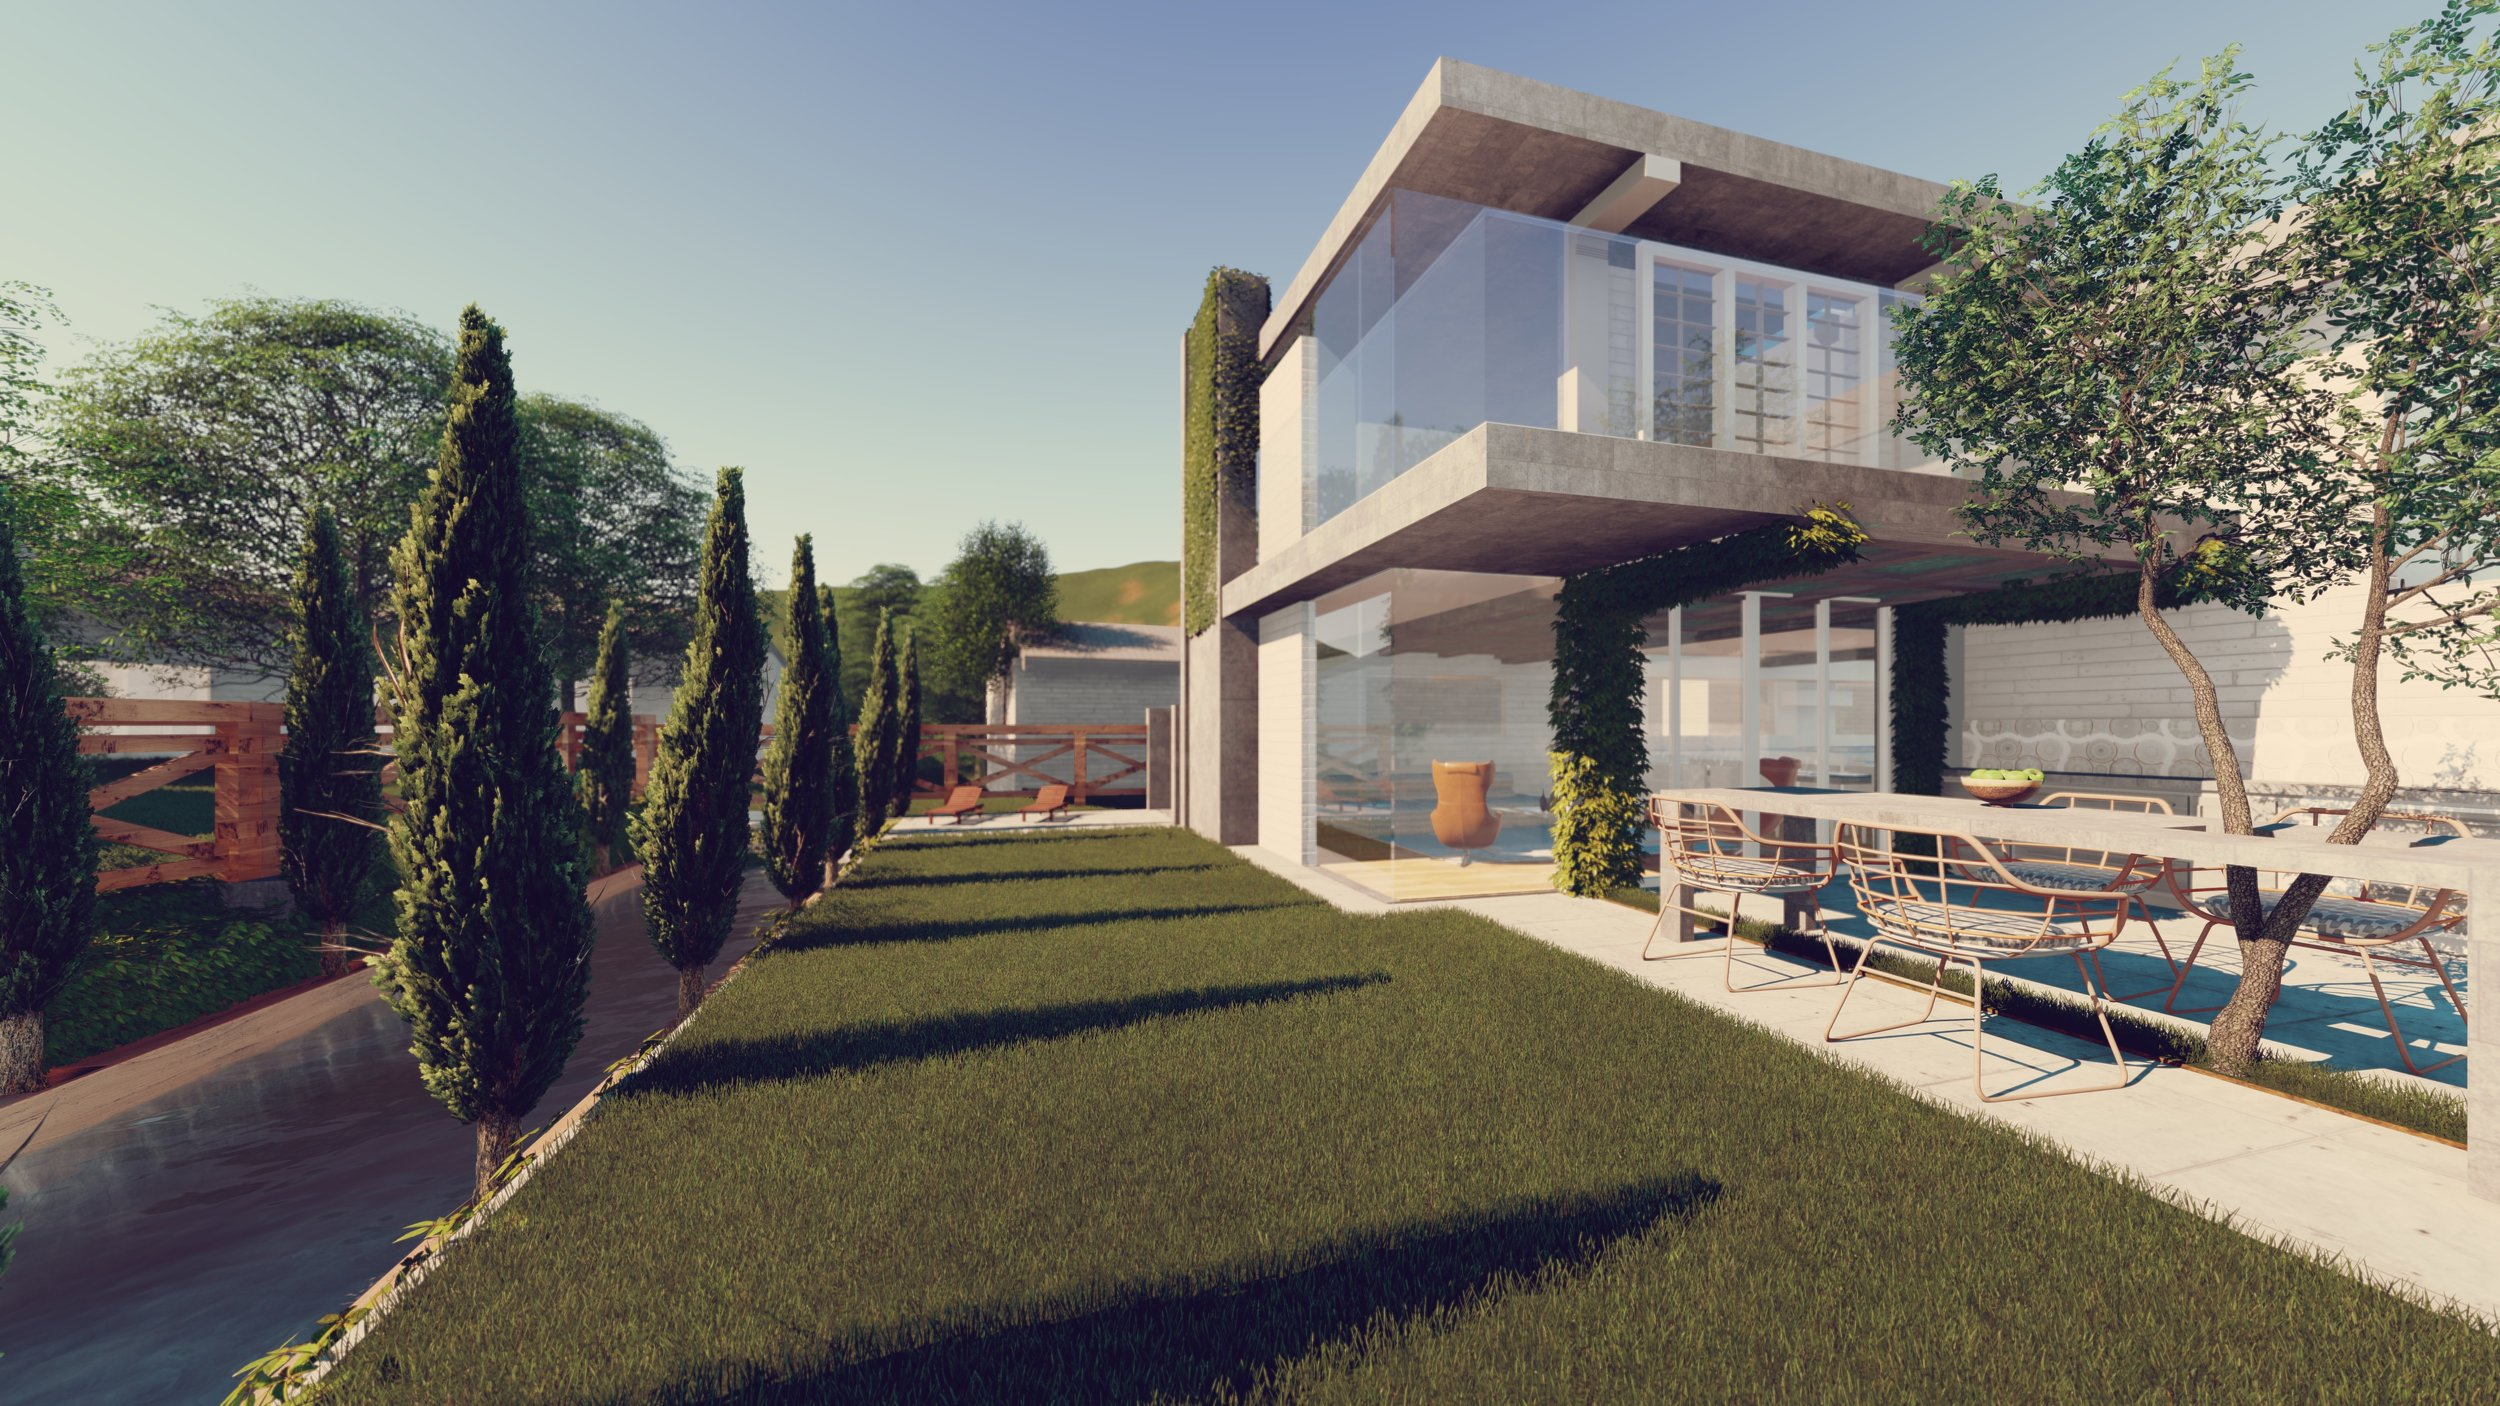 1351 Grand Ave - RENDERS - YARD_2_081517.jpg